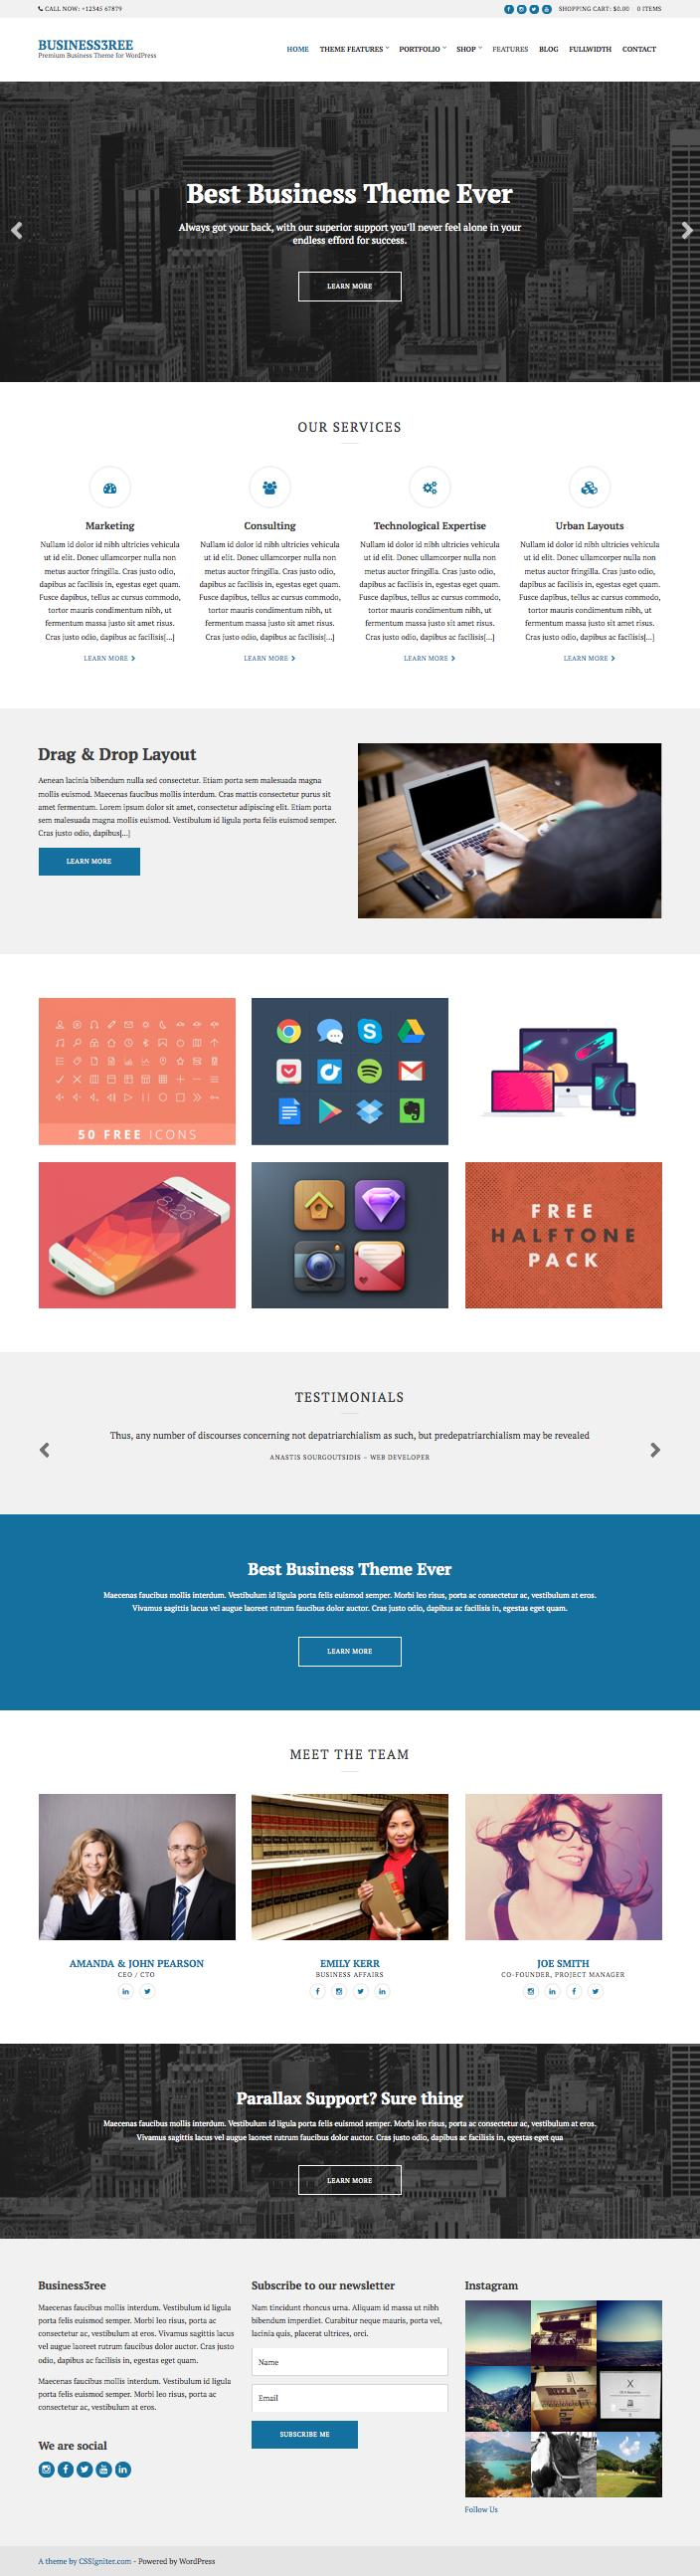 Business3ree WordPress Corporate Service Theme